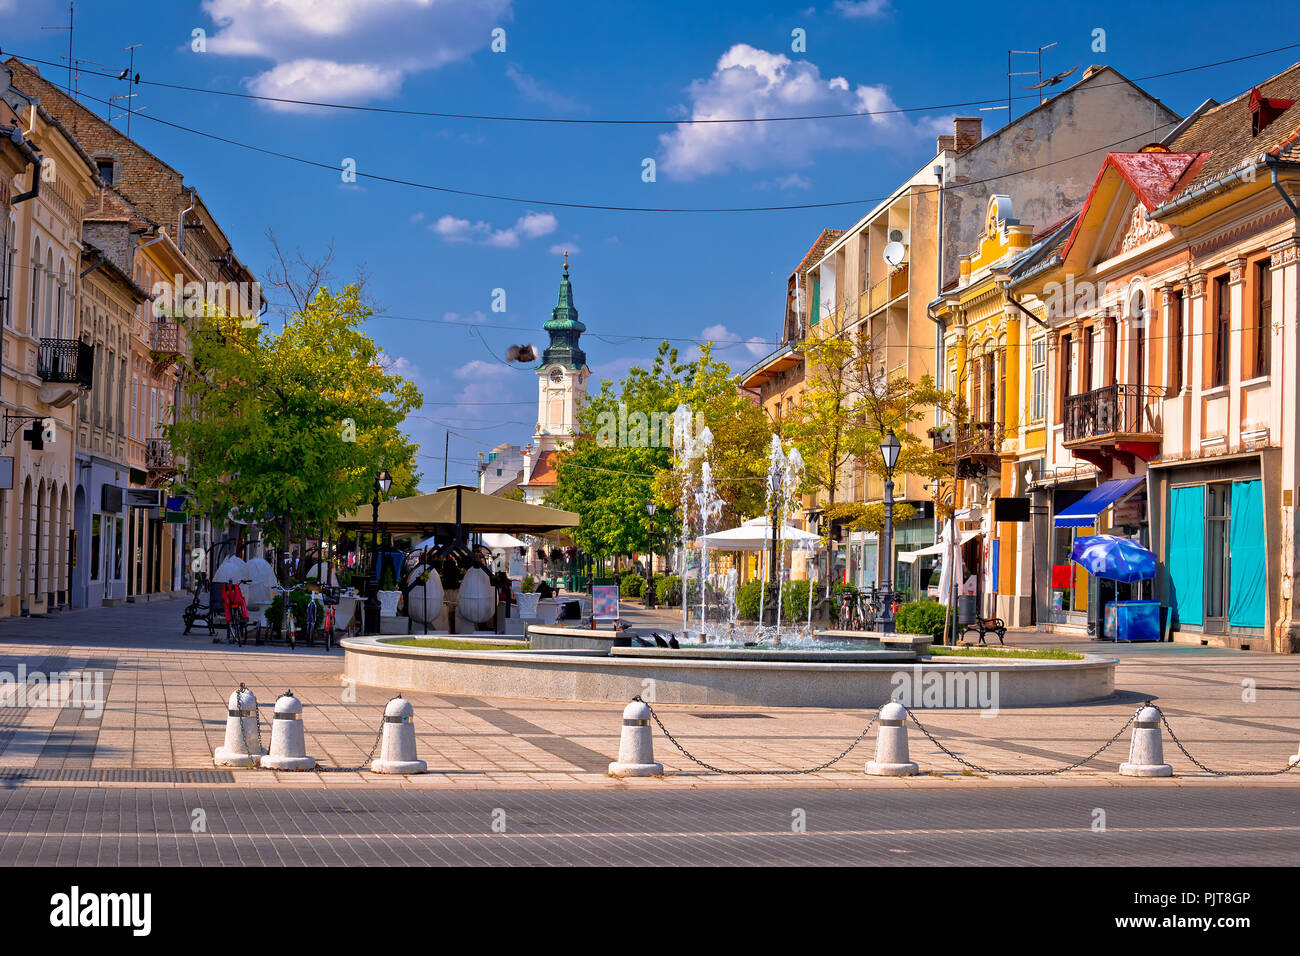 Town of Sombor square and architecture view, Vojvodina region of Serbia - Stock Image